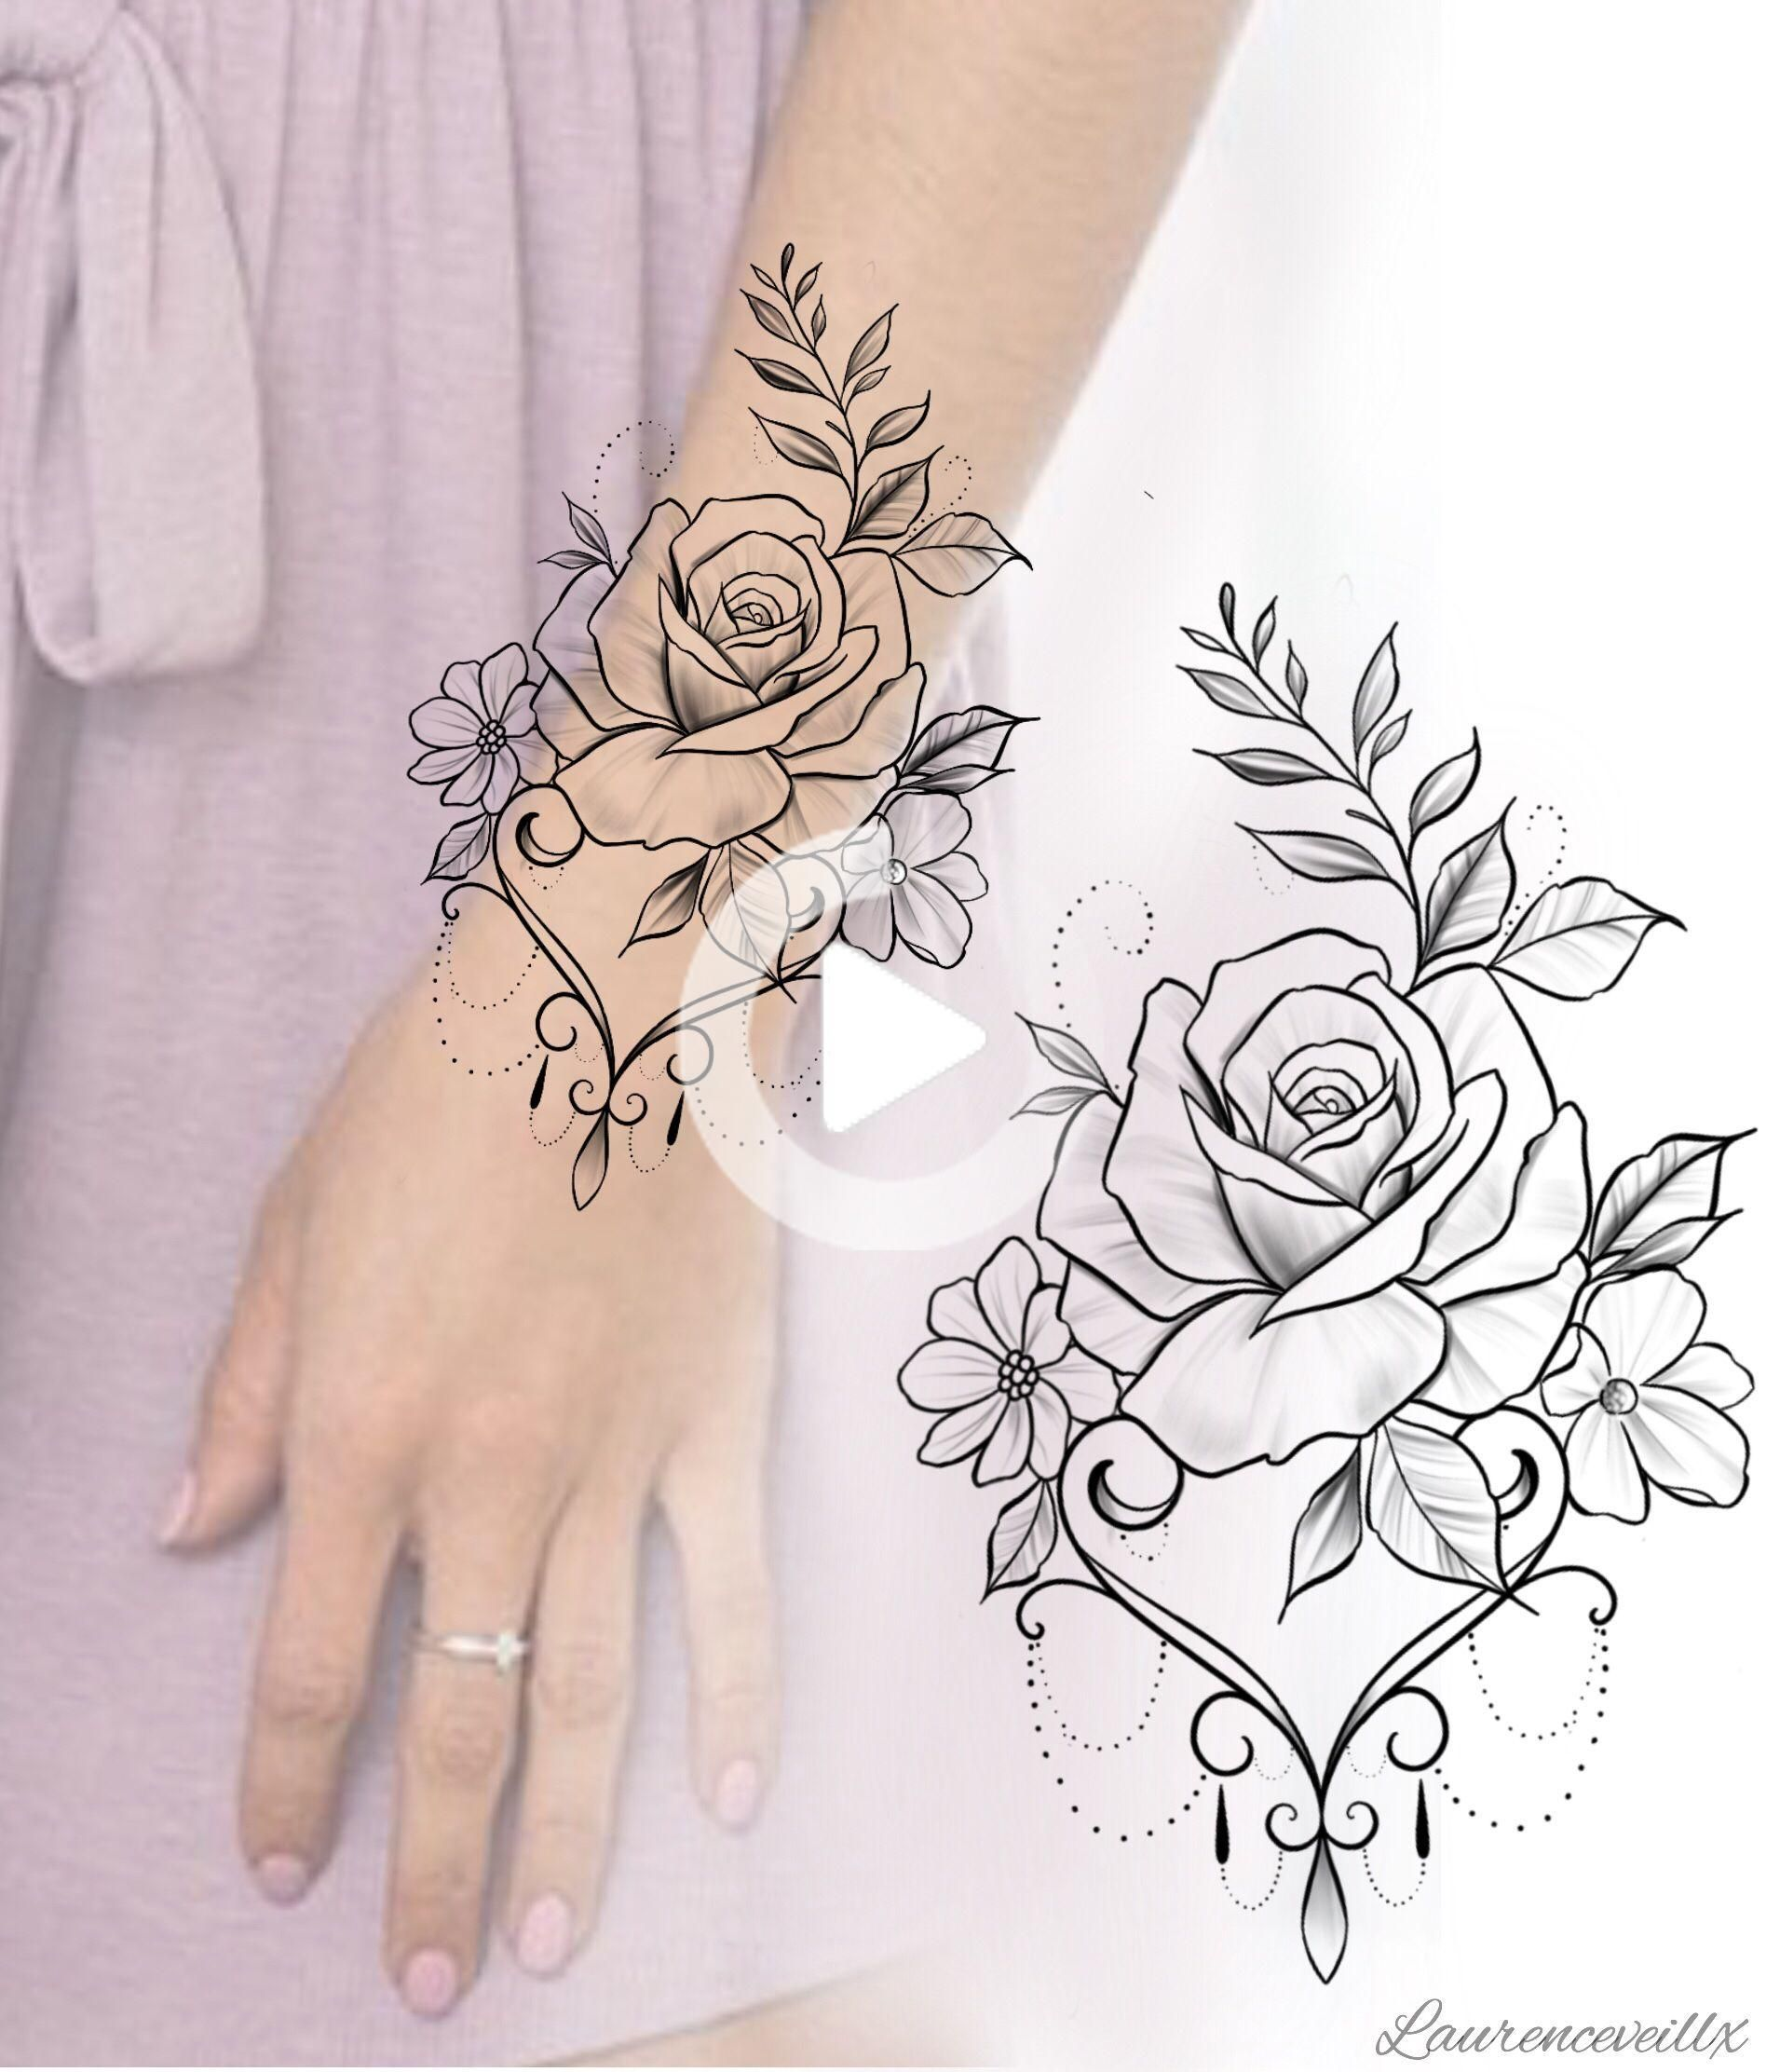 Flower Rose Tattoo Design Available For Instant Download Etsy Laurenceveillx Alaurenceveillx In 2020 Rose Tattoo Design Hand Tattoos Tattoo Designs